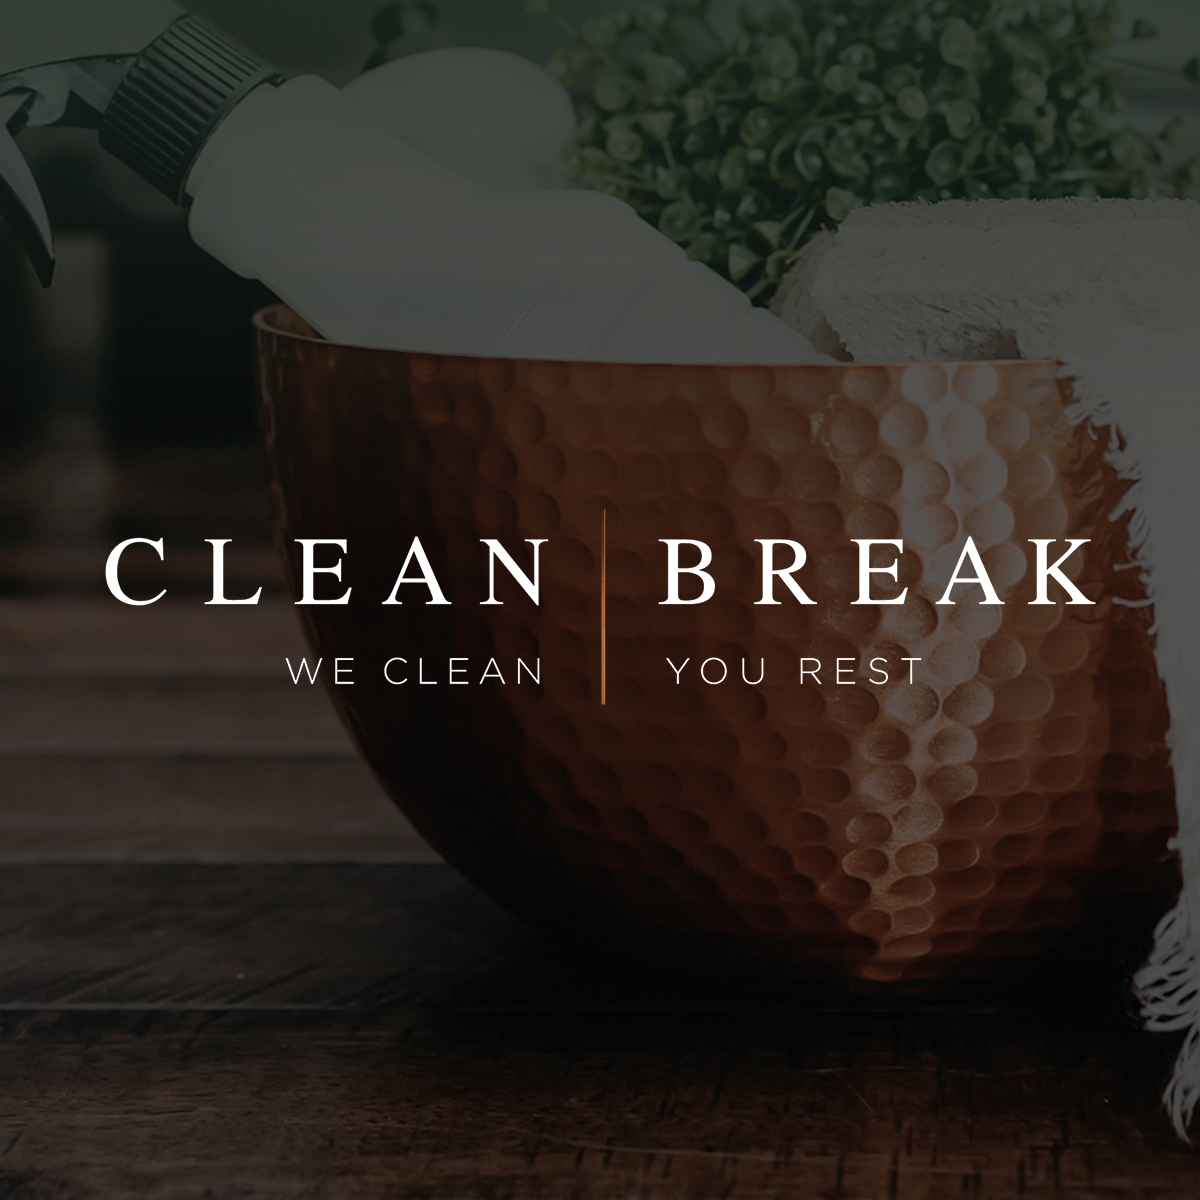 Clean Break Brand